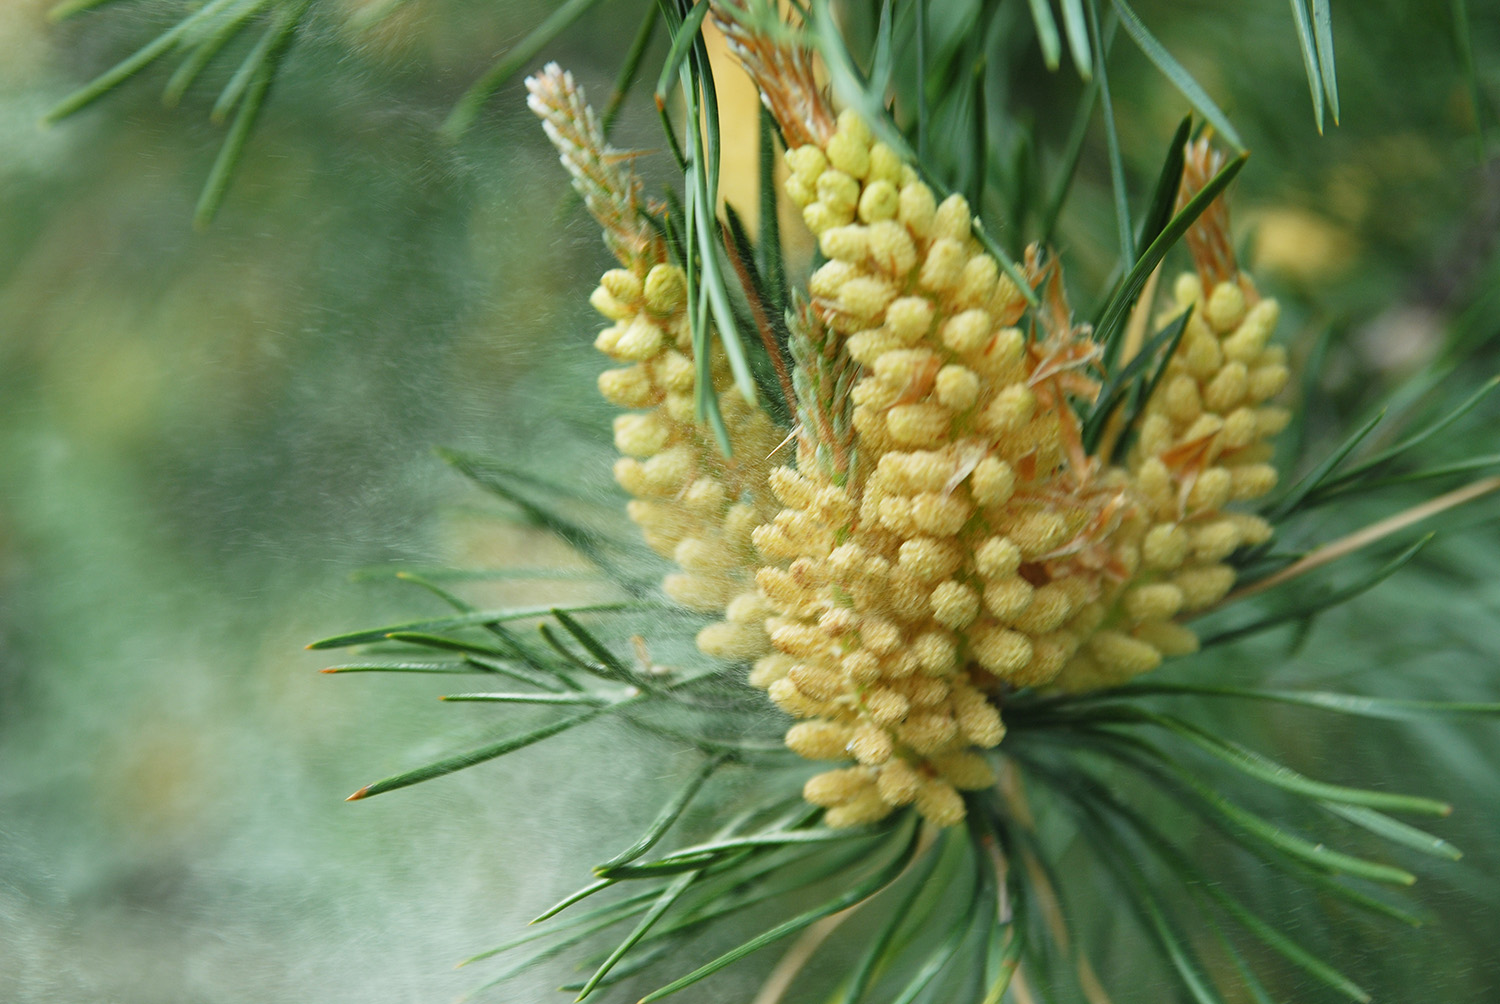 Wild-harvested Pinus massoniana Pollen